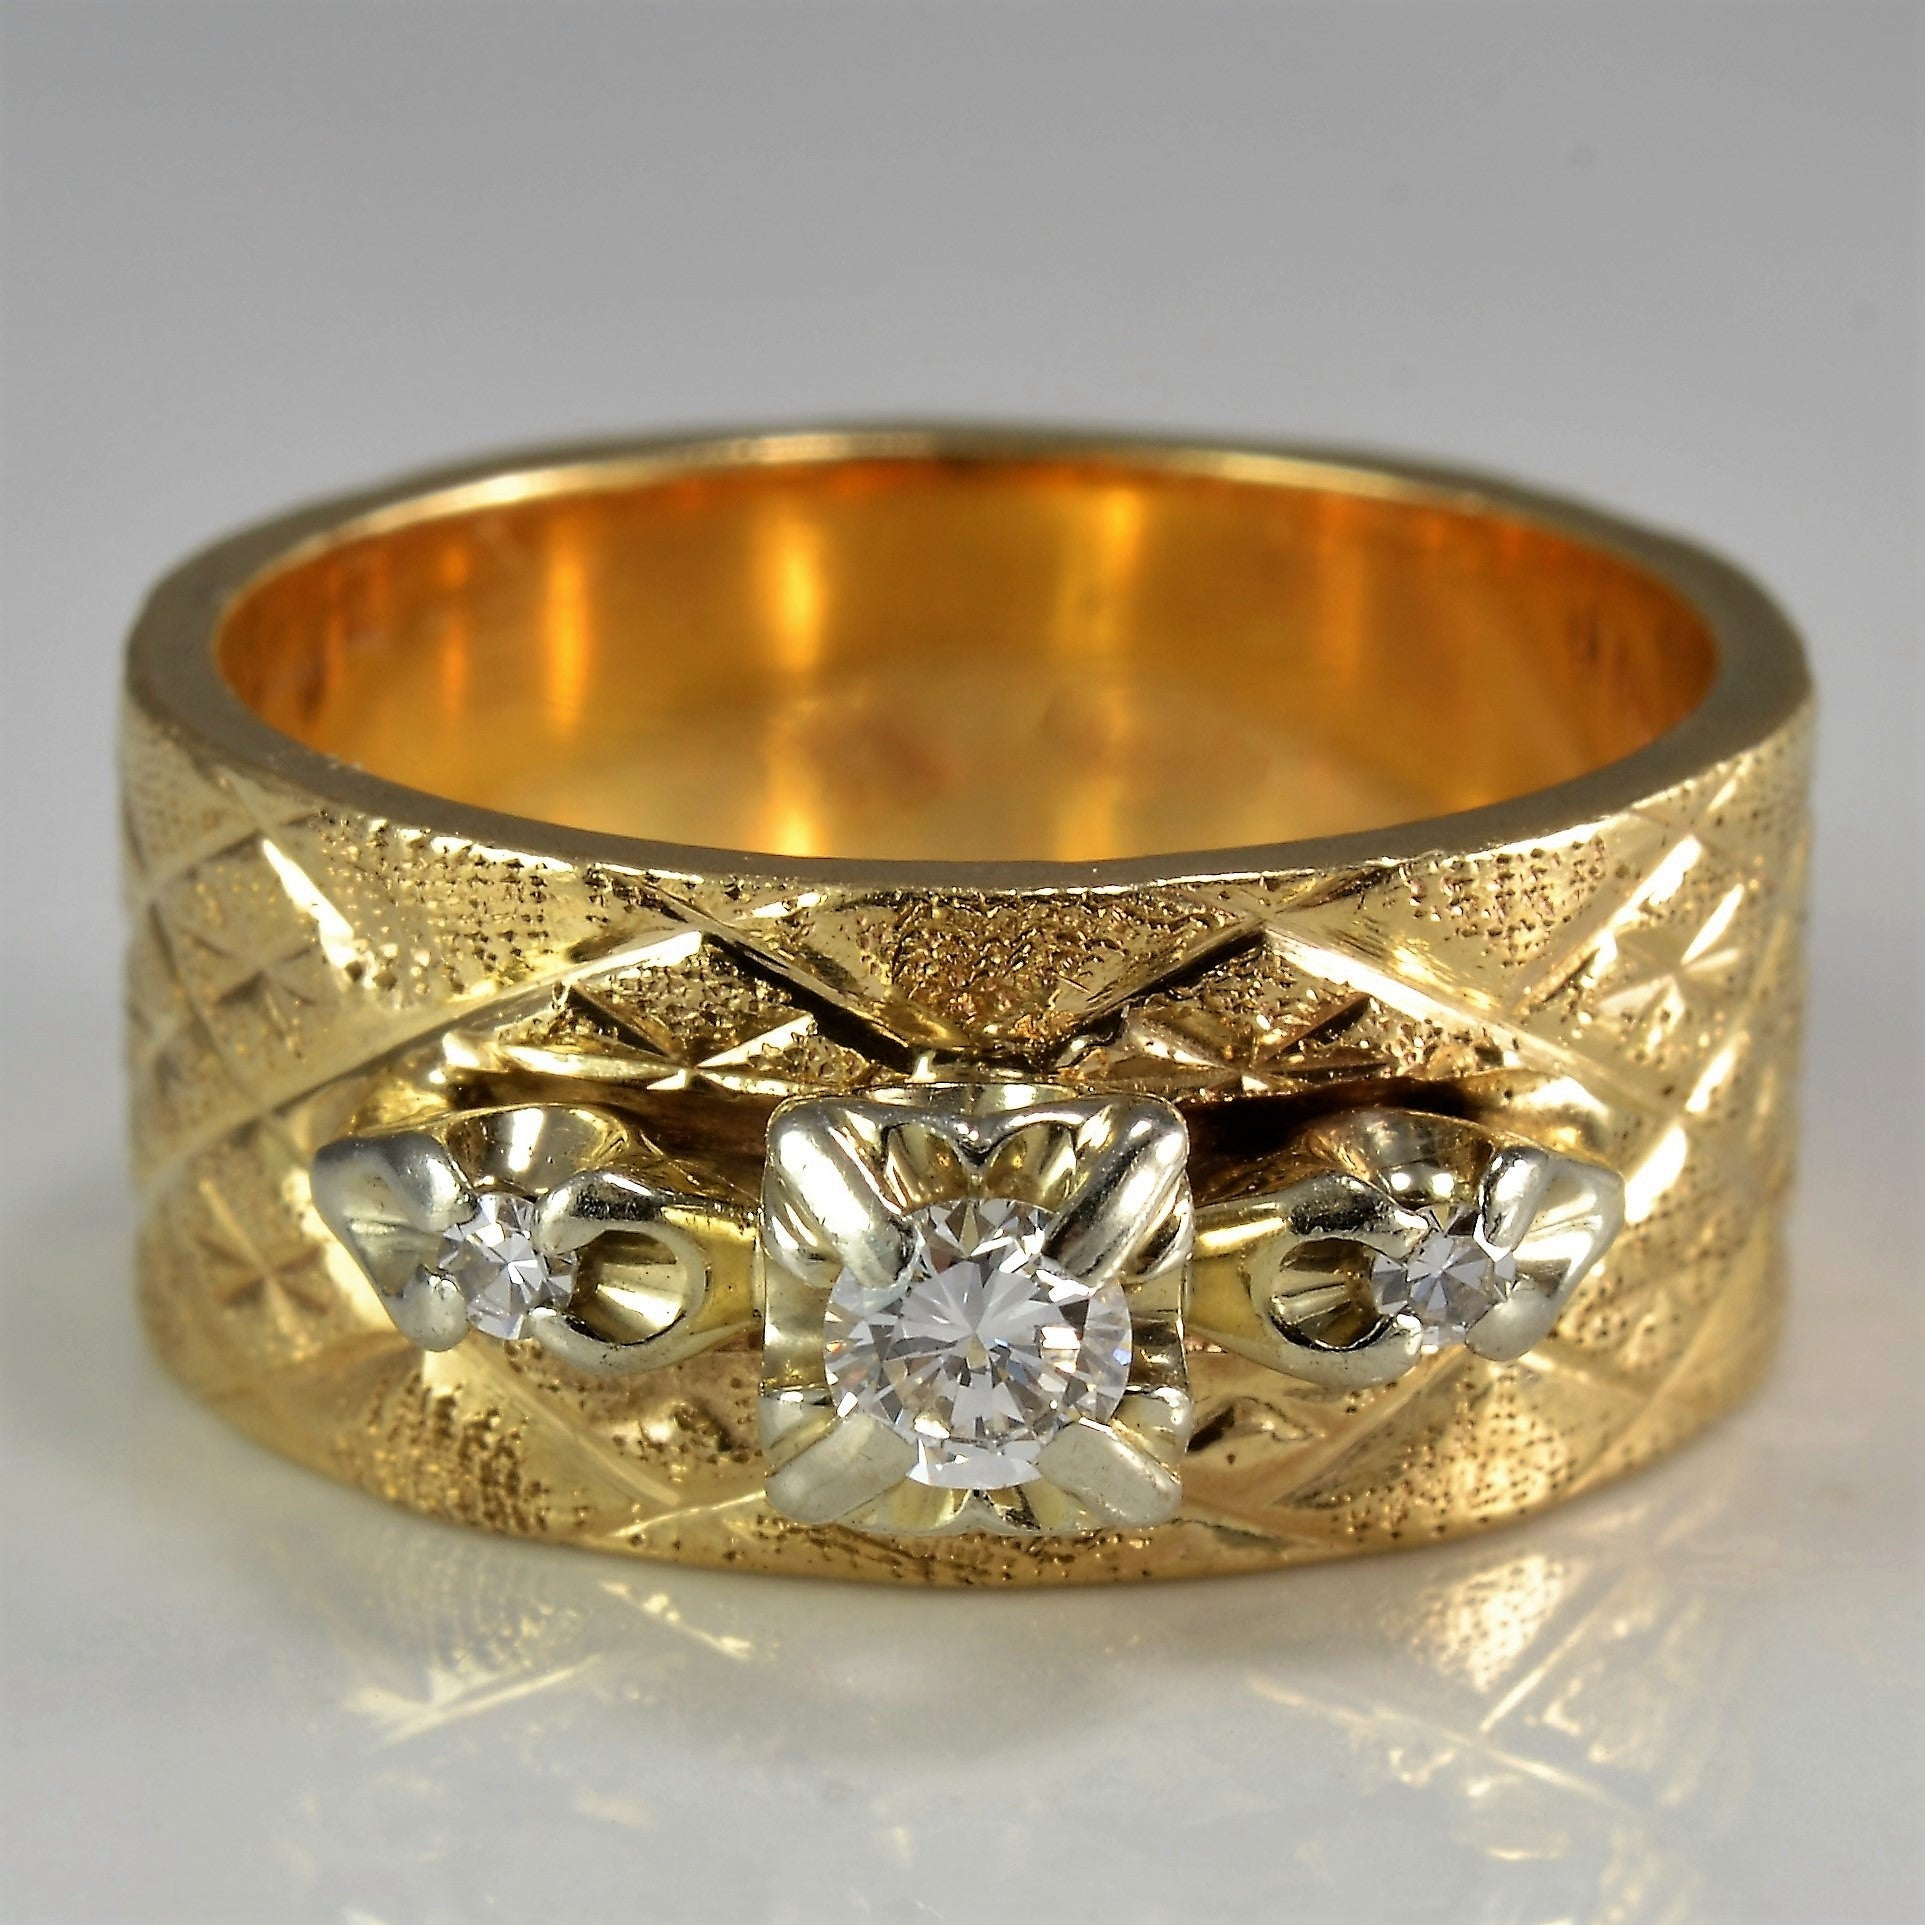 yellow band ring simon diamond rings white bands gold g wide